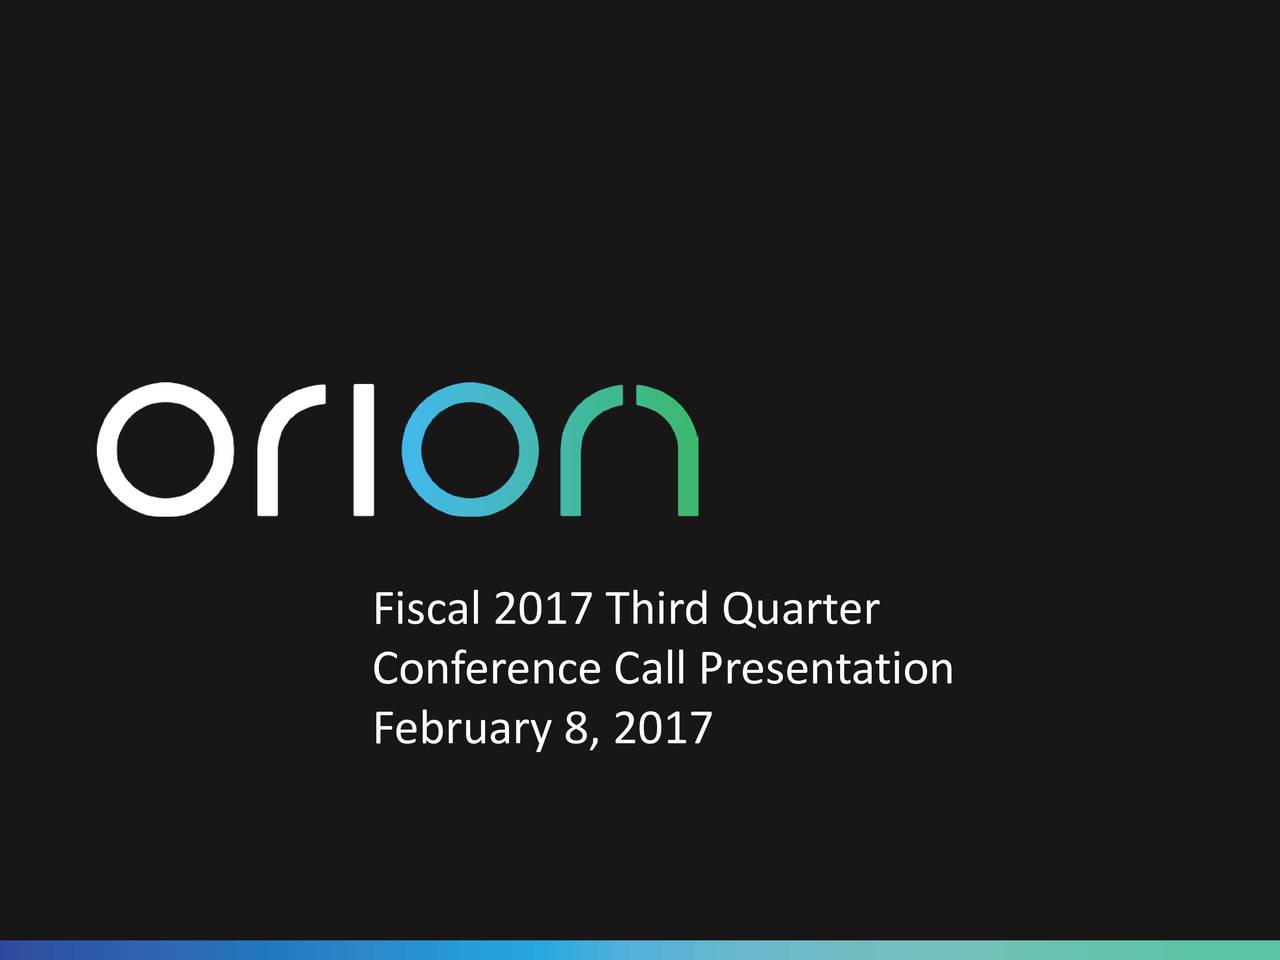 Conference Call Presentation February 8, 2017 Orion Energy SNASDAQ: OESX.1